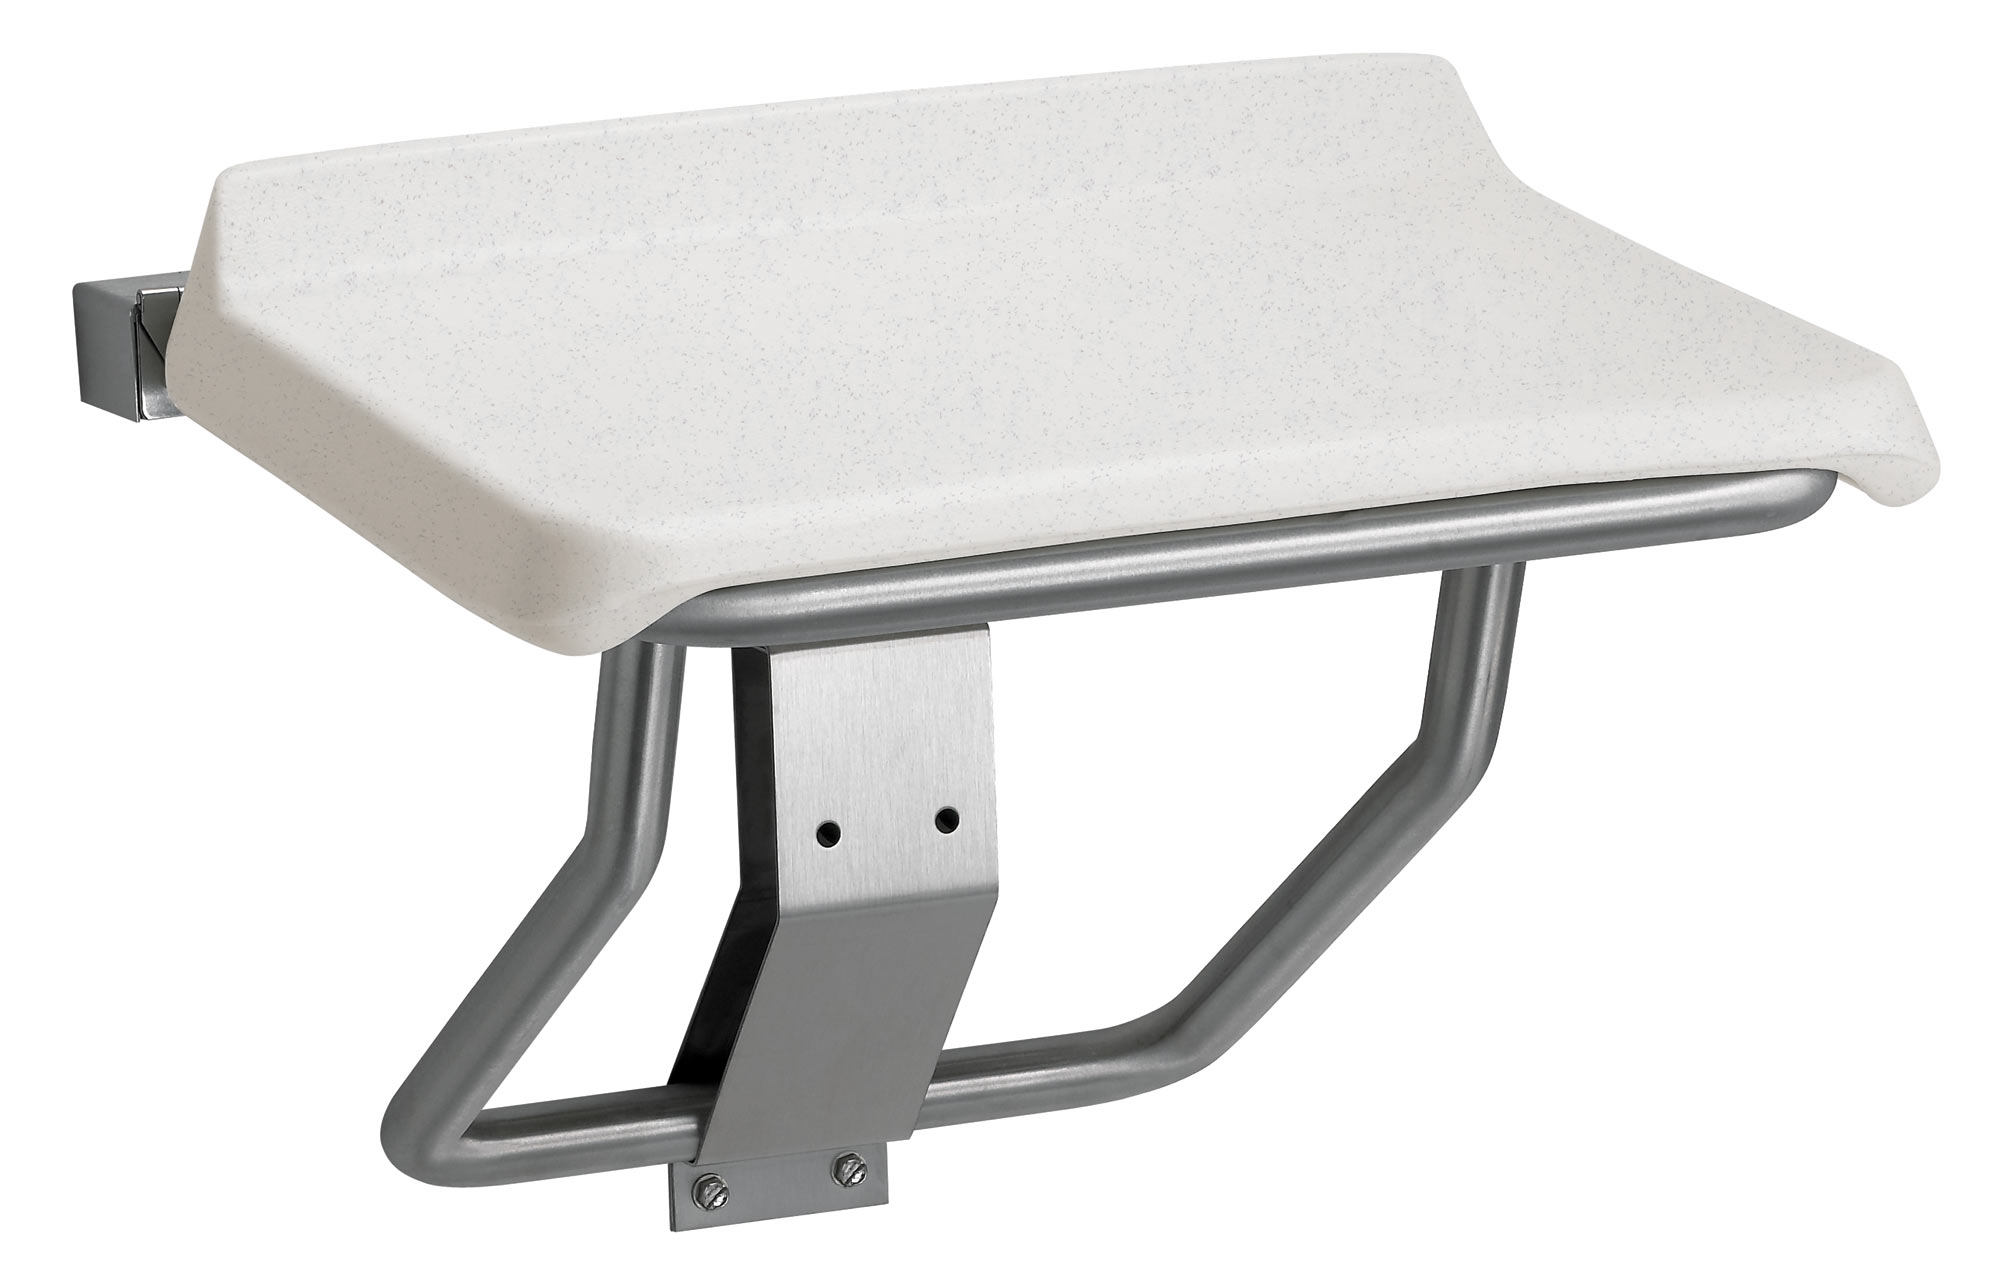 Antimicrobial Molded Plastic Folding Shower Seat Bradley Corporation